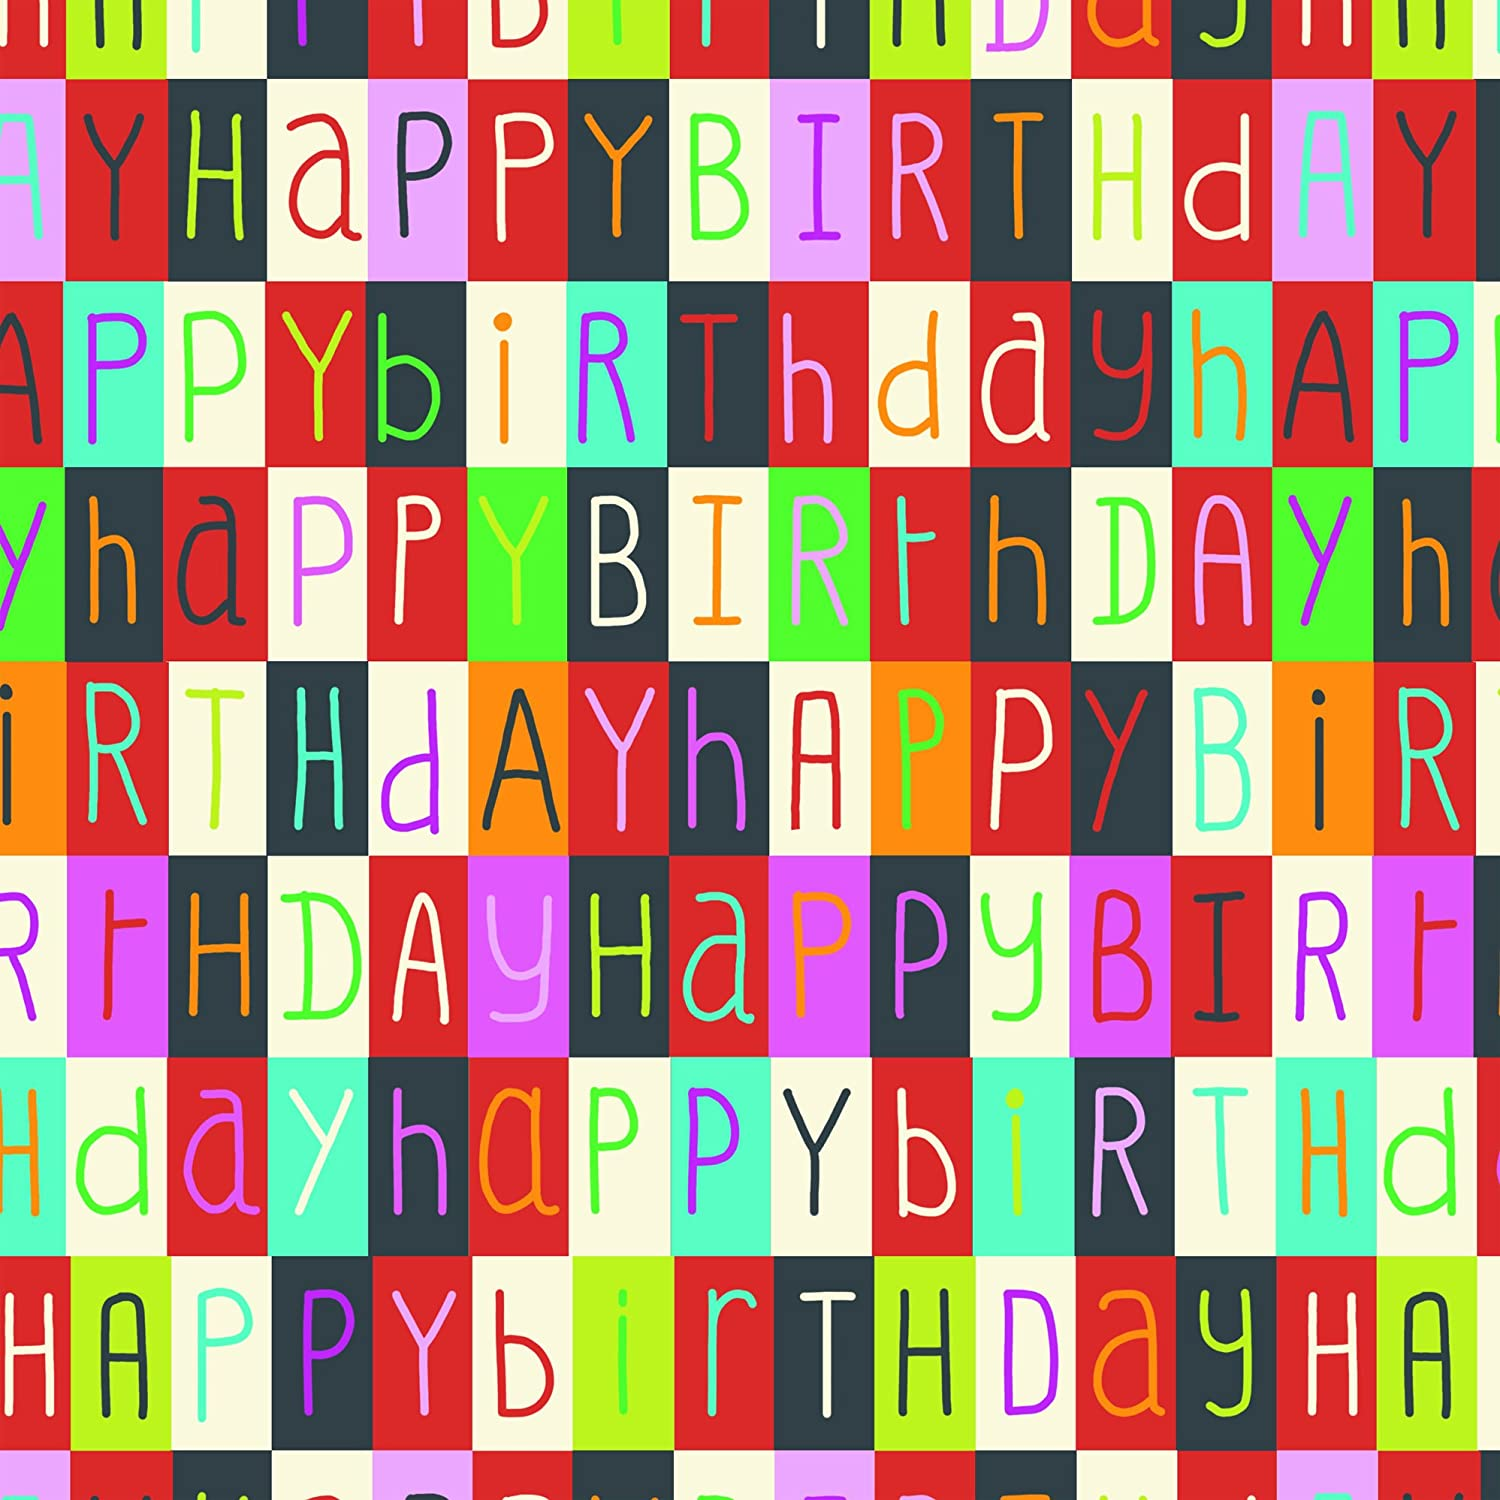 Printable Birthday Wrapping Paper Free ~ Happy birthday wrapping paper gallery